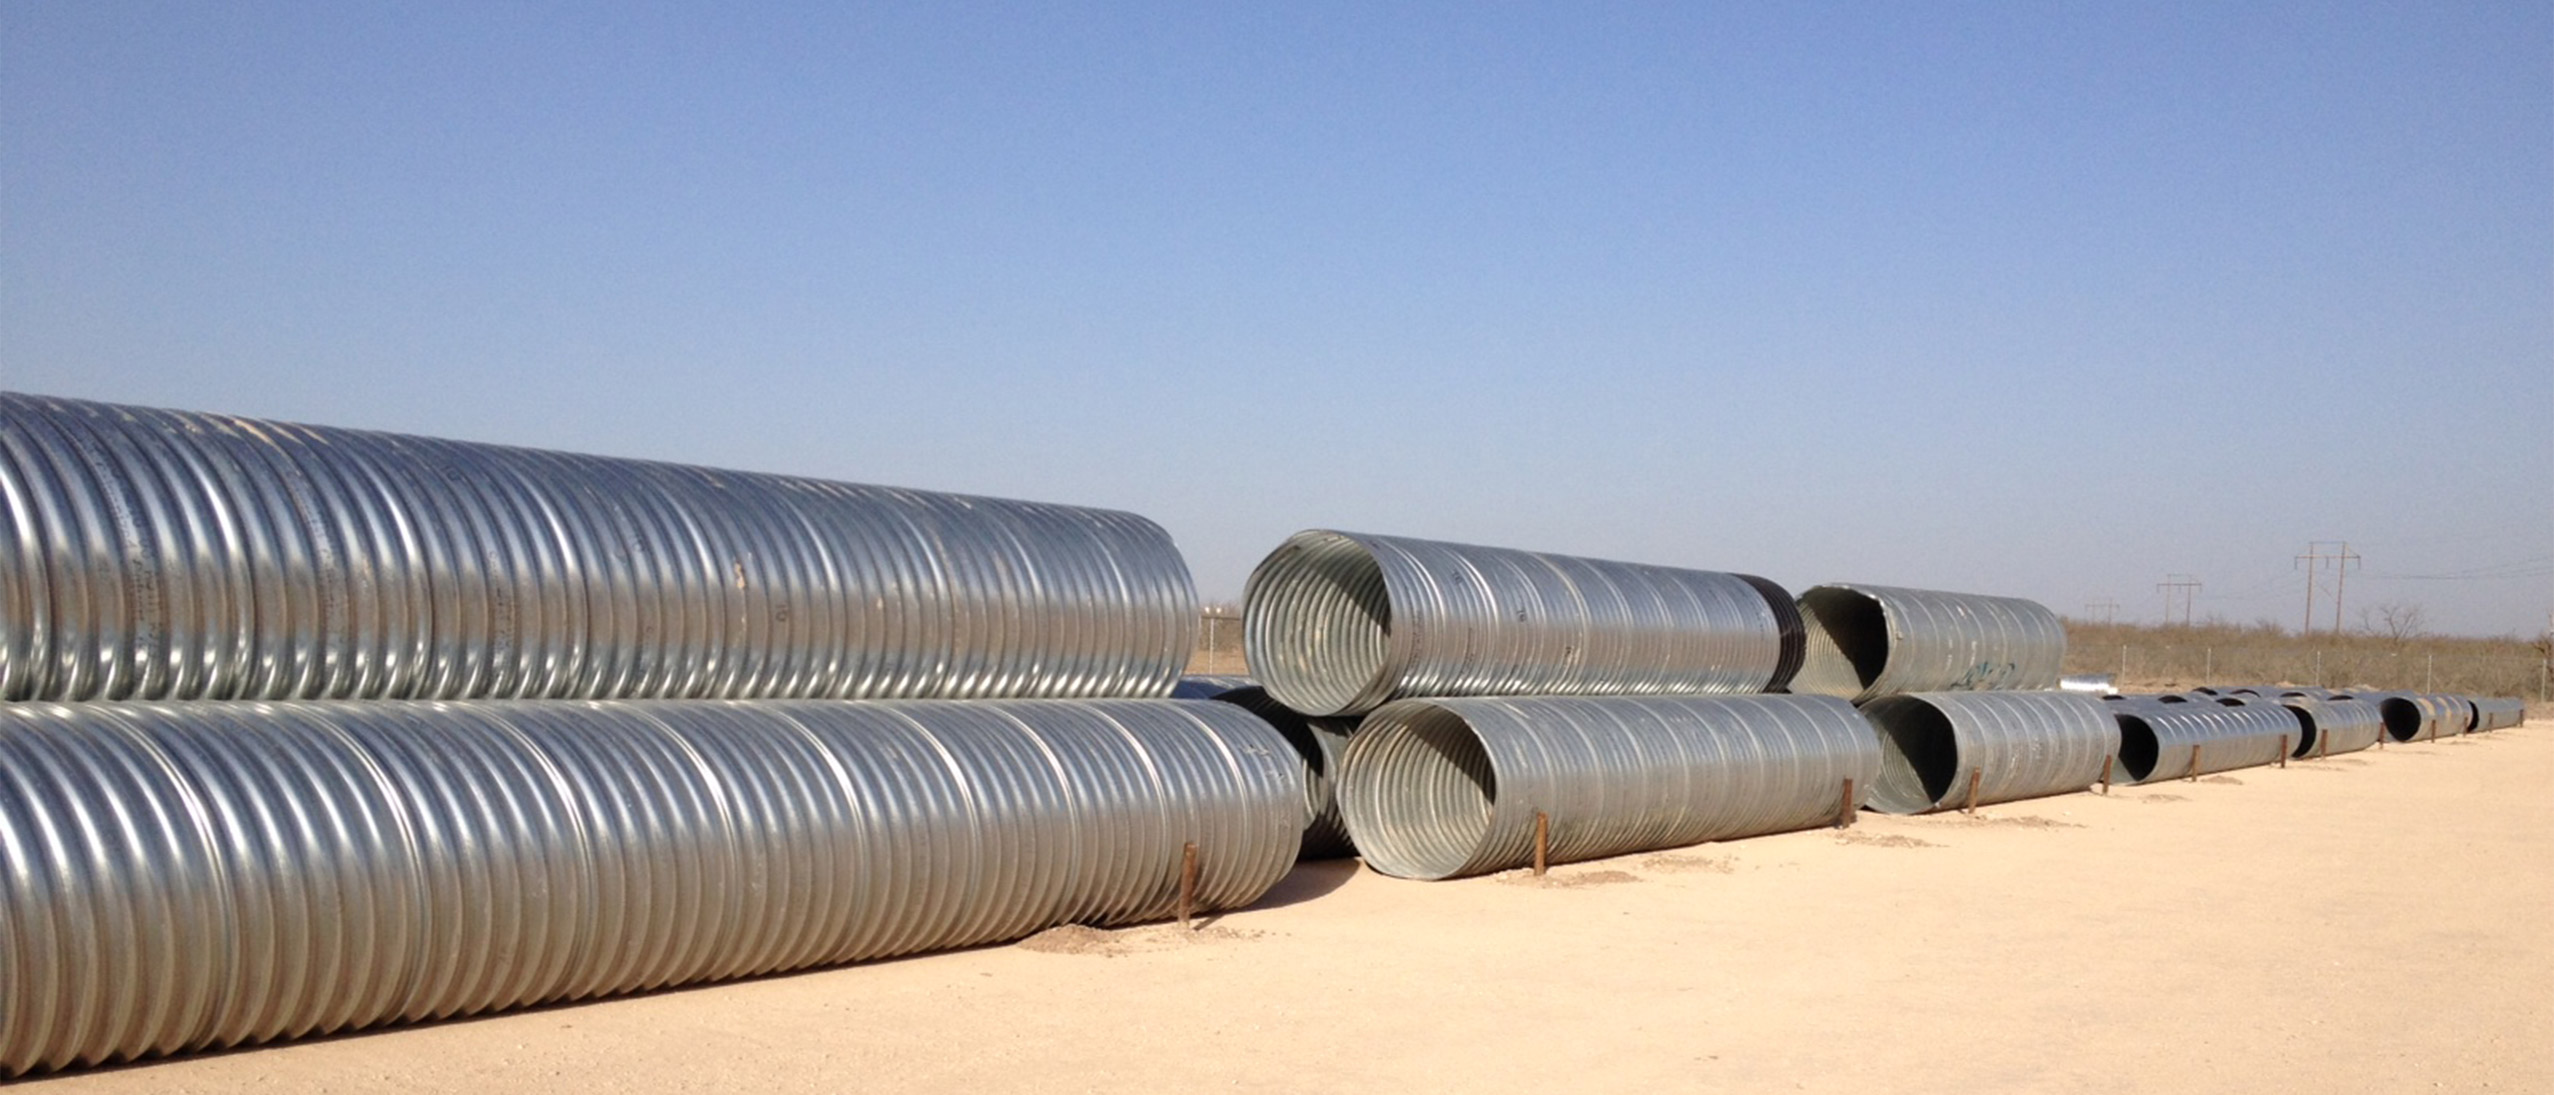 Steel tubes for a culvert application in storage at Lowery's Wholesale metals.